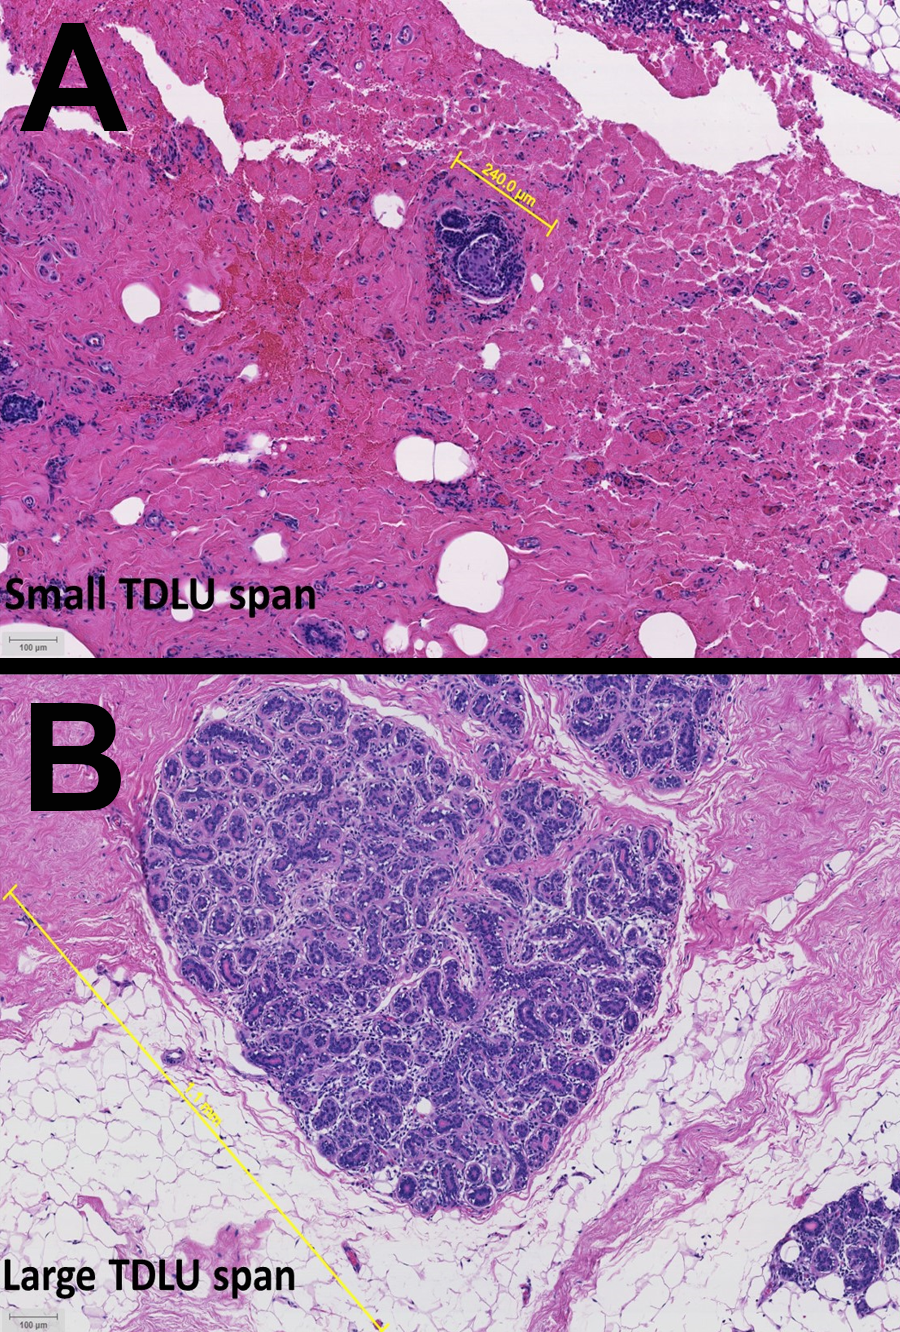 H&E images from patients with (A) luminal A and (B) triple negative breast cancer.  In the images above, the normal tissue adjacent to a triple negative tumor (B) shows a larger TDLU, and therefore reduced involution, compared to the smaller TDLU in normal tissue adjacent to a luminal A tumor (A).